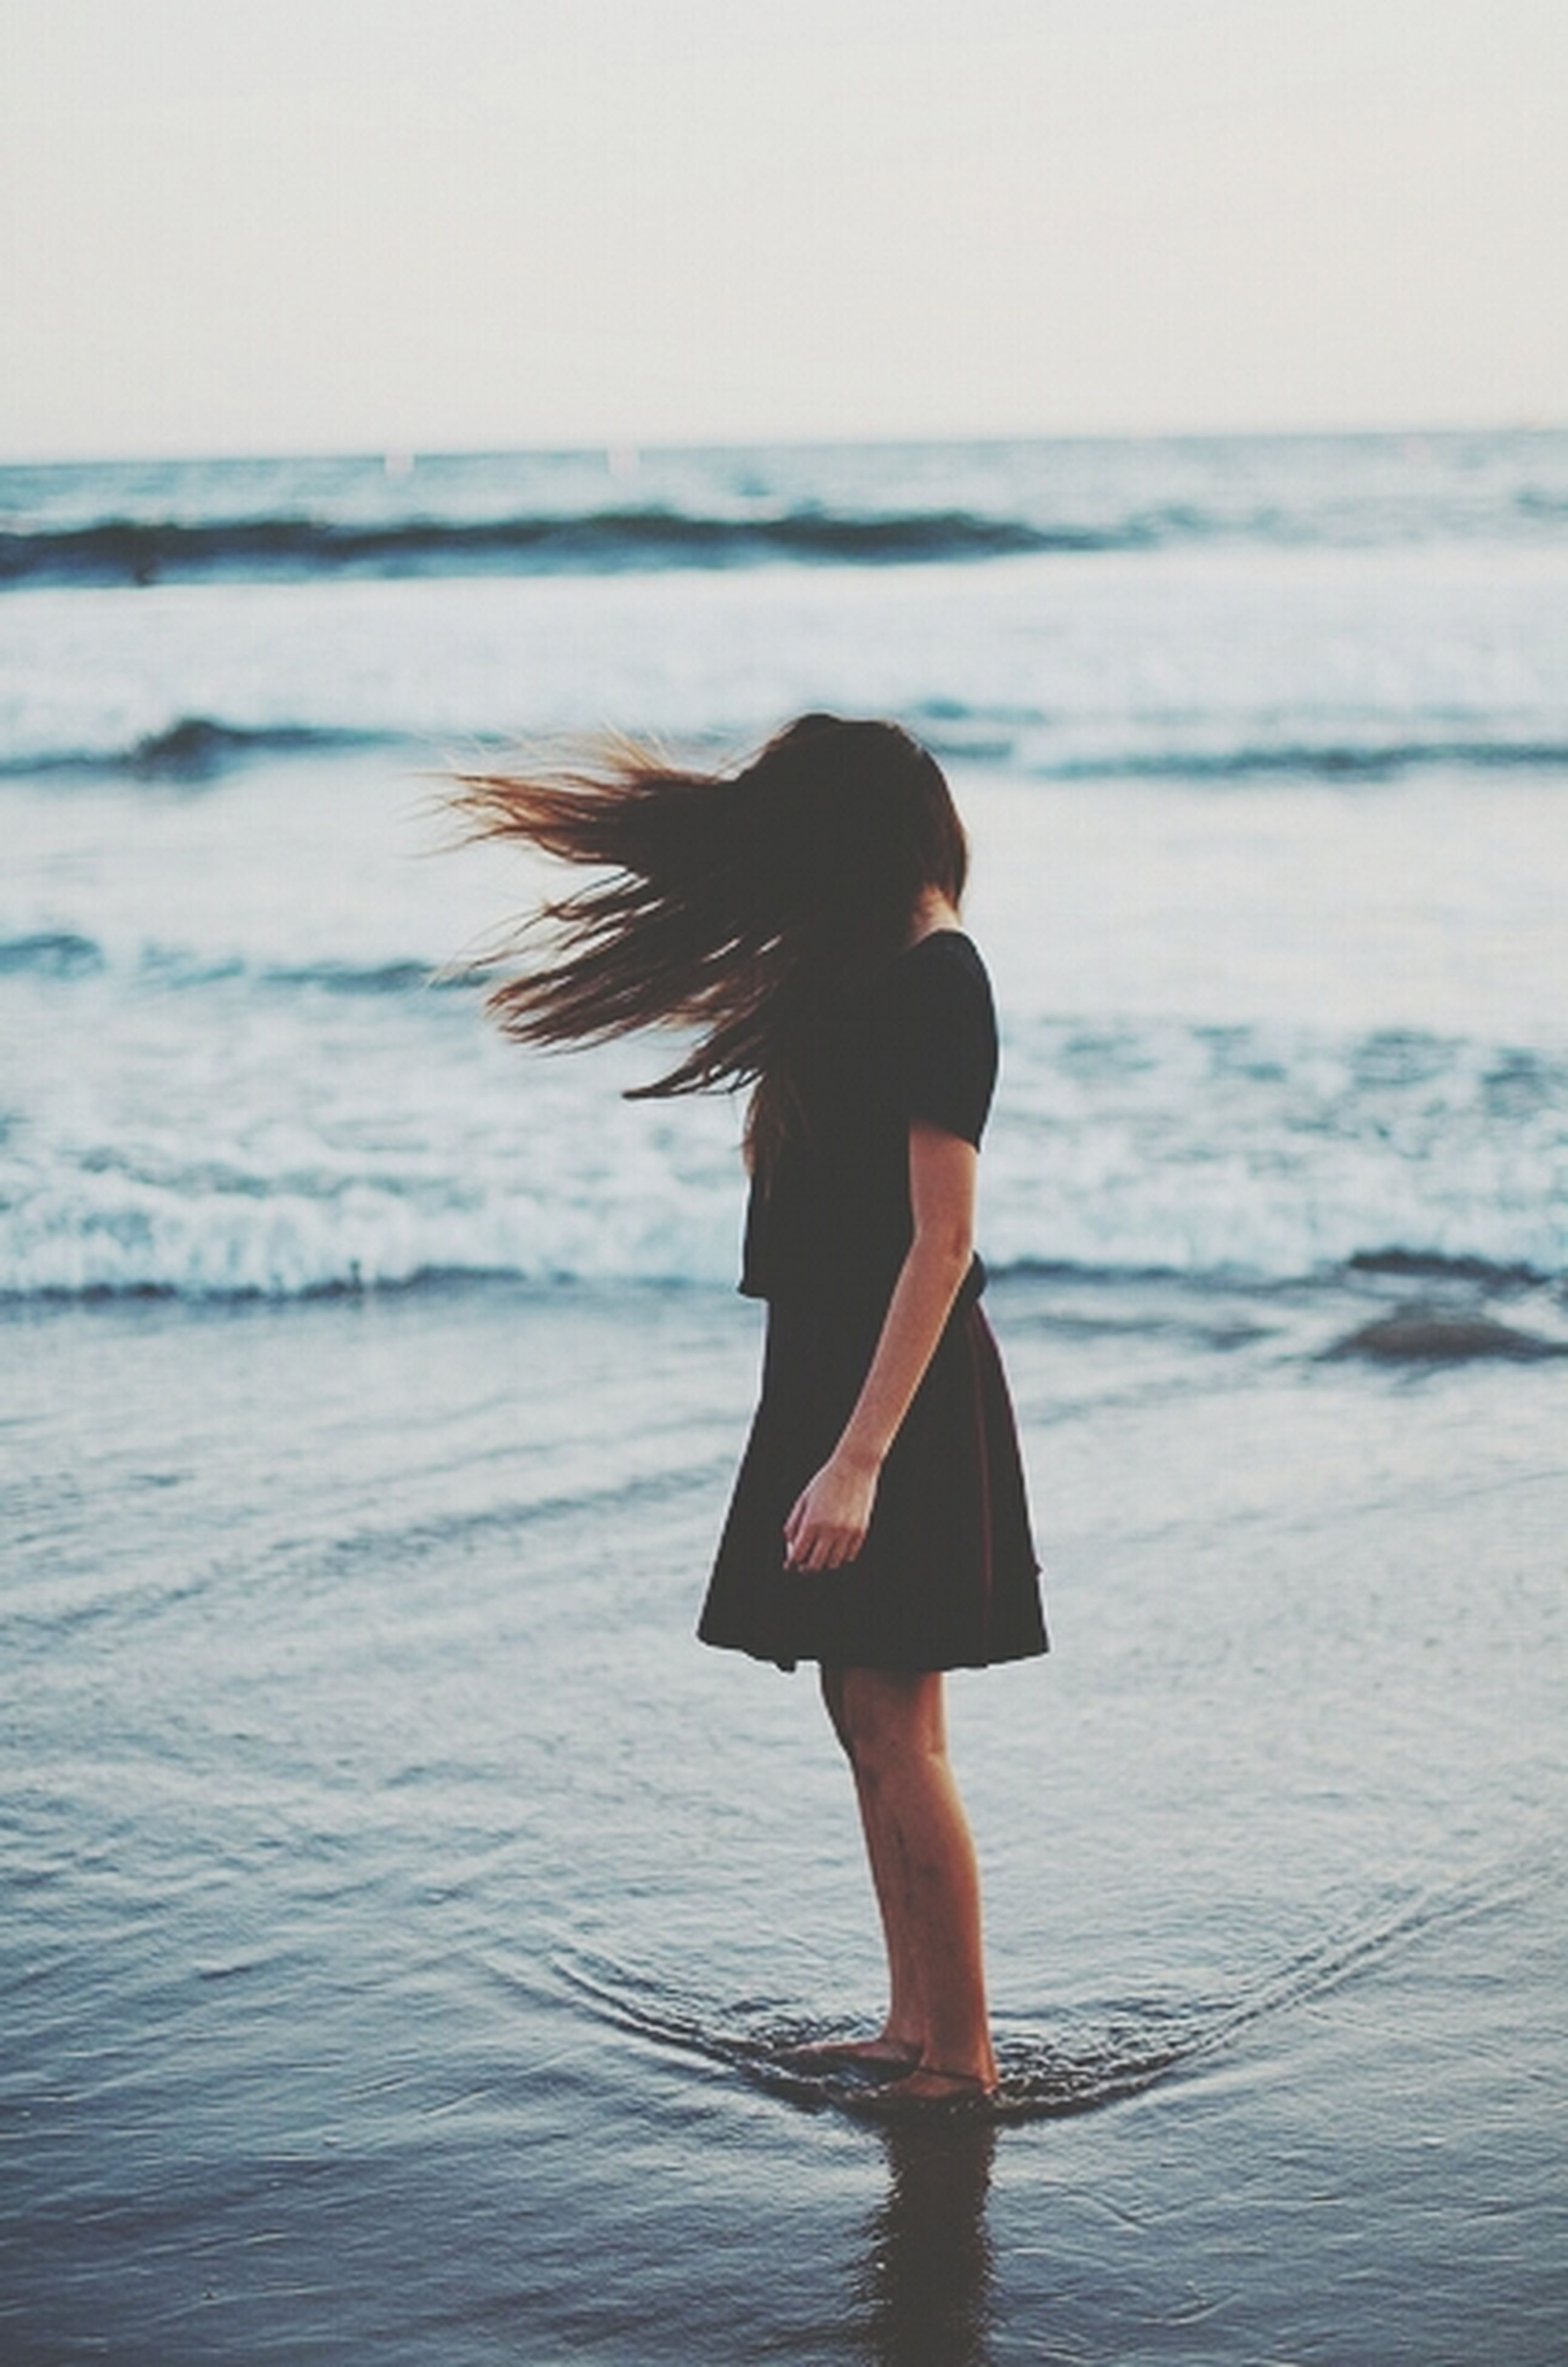 sea, water, horizon over water, rear view, full length, beach, lifestyles, standing, leisure activity, shore, person, tranquility, wave, side view, tranquil scene, nature, vacations, long hair